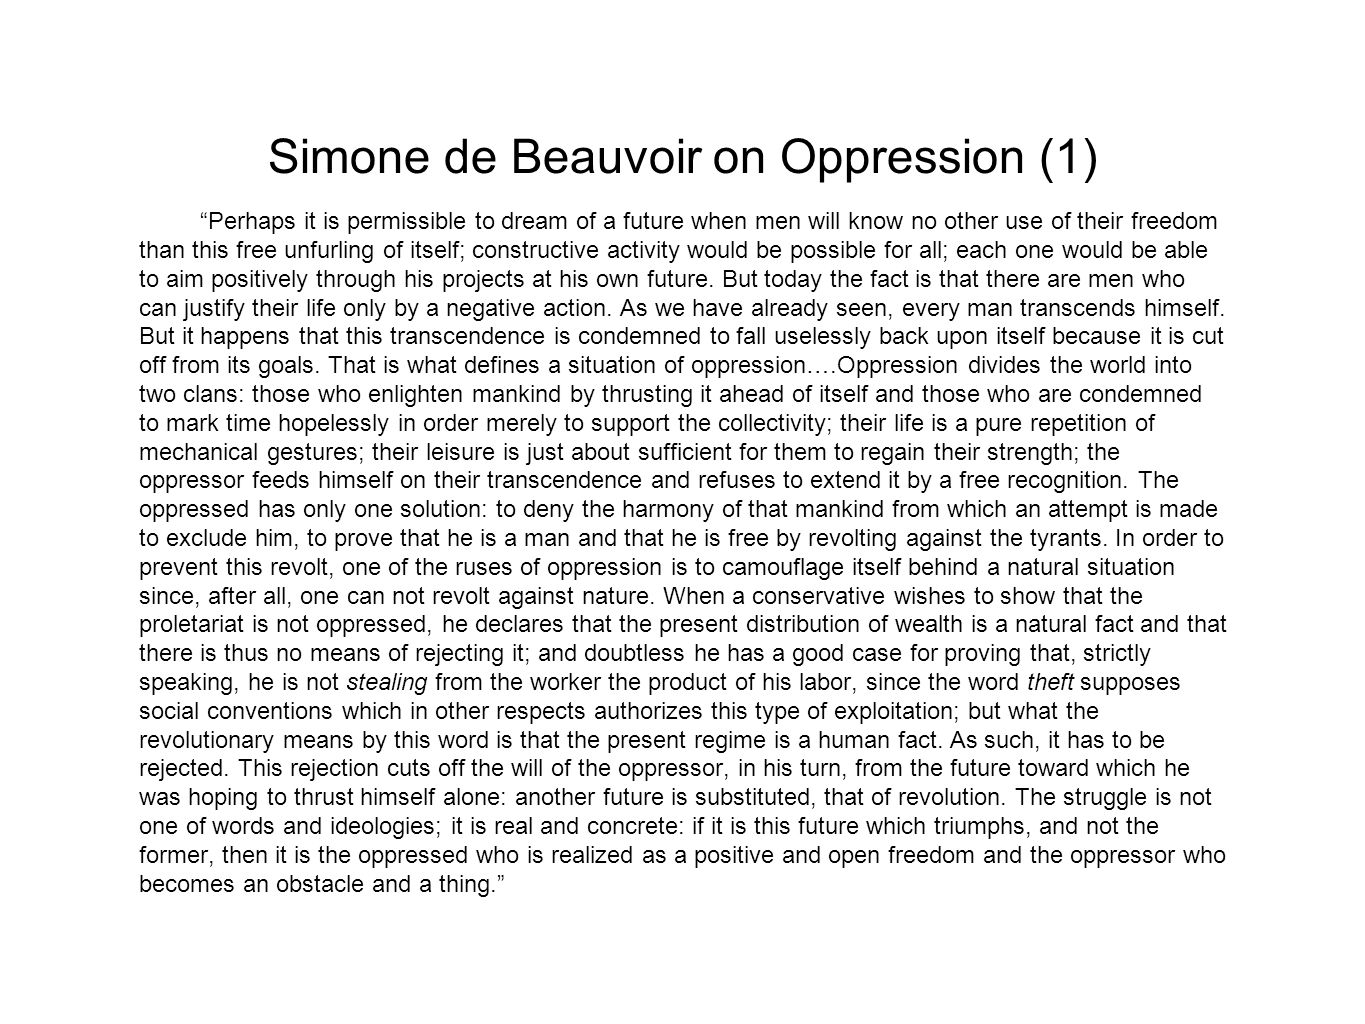 Simone de Beauvoir on Oppression (1) Perhaps it is permissible to dream of a future when men will know no other use of their freedom than this free unfurling of itself; constructive activity would be possible for all; each one would be able to aim positively through his projects at his own future.